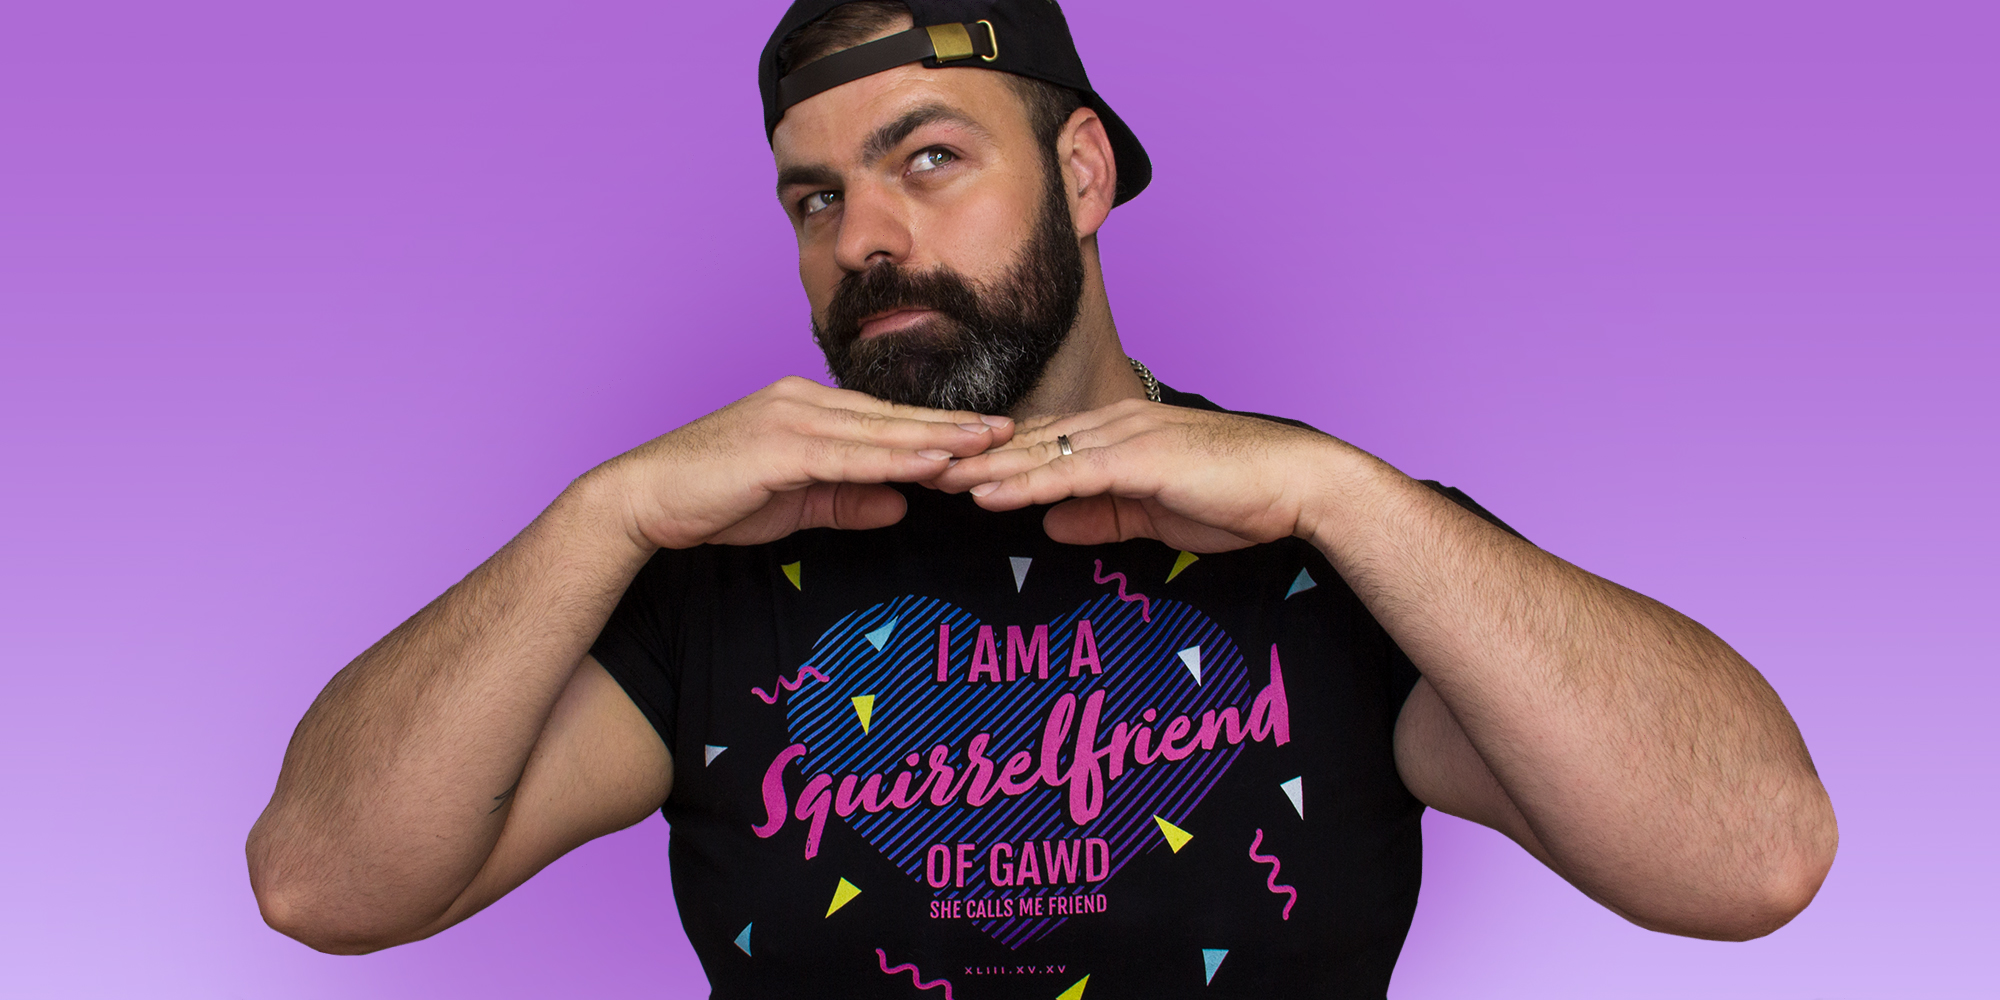 I-am-a-squirrelfriend-of-gawd-god-tshirt-bro-bear-blog-0.jpg